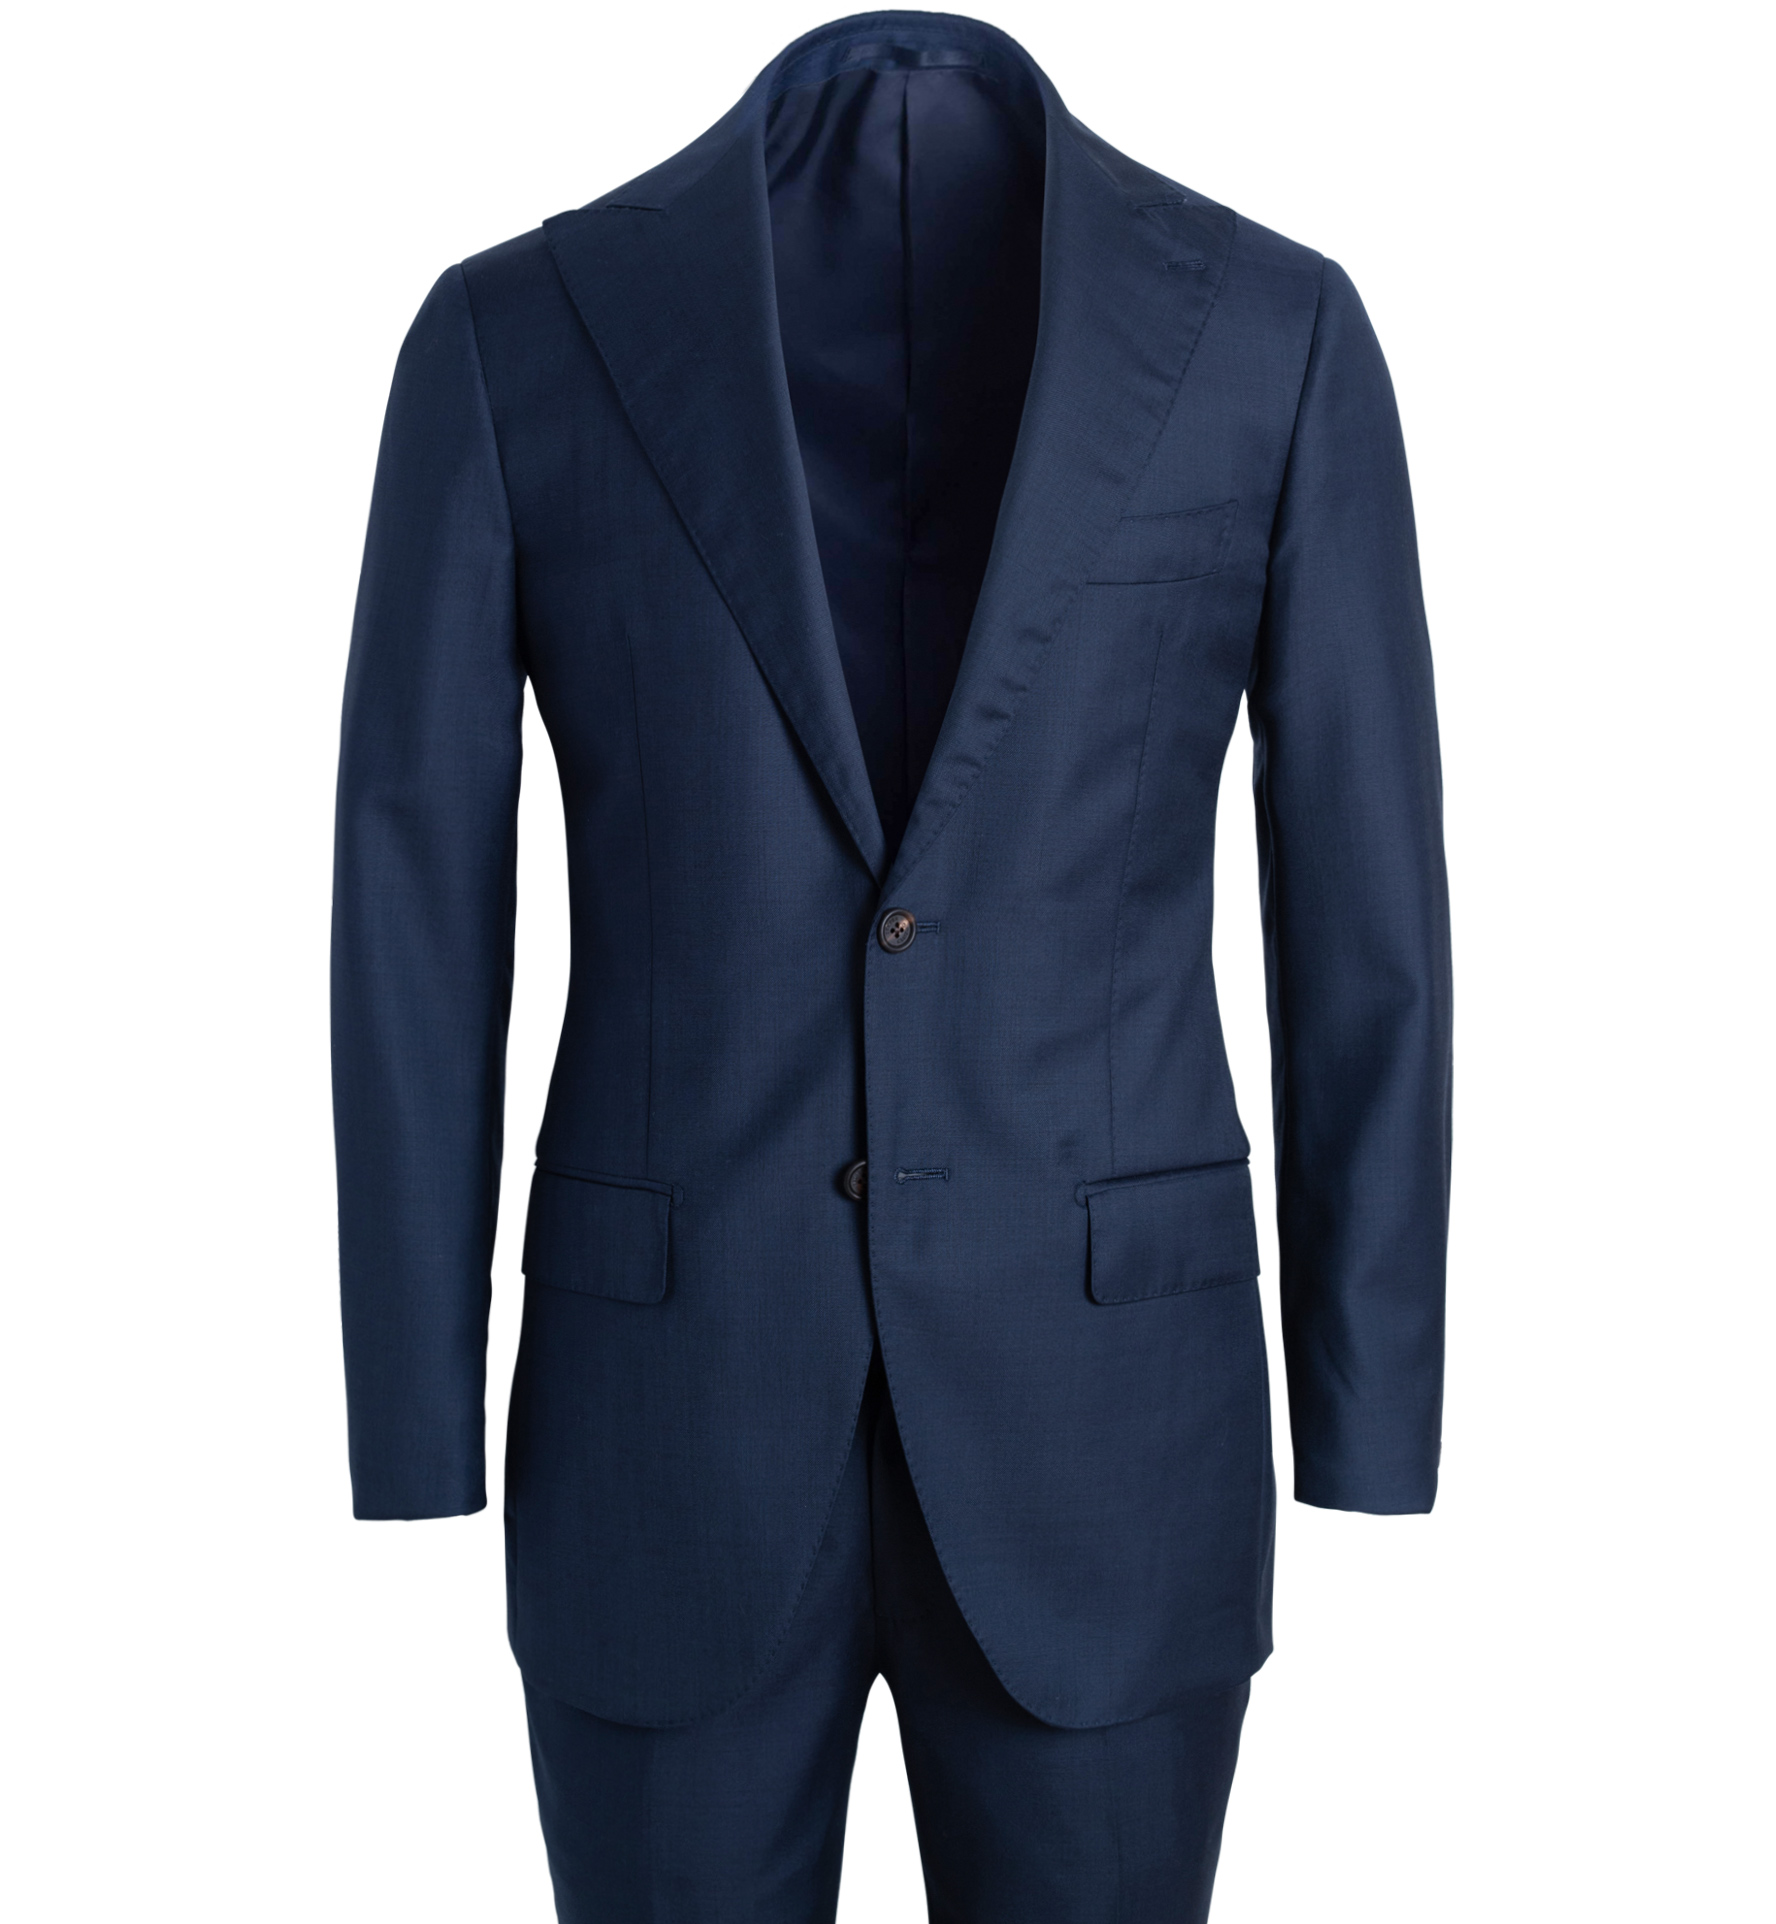 Zoom Image of Allen Navy S130s Sharkskin Suit